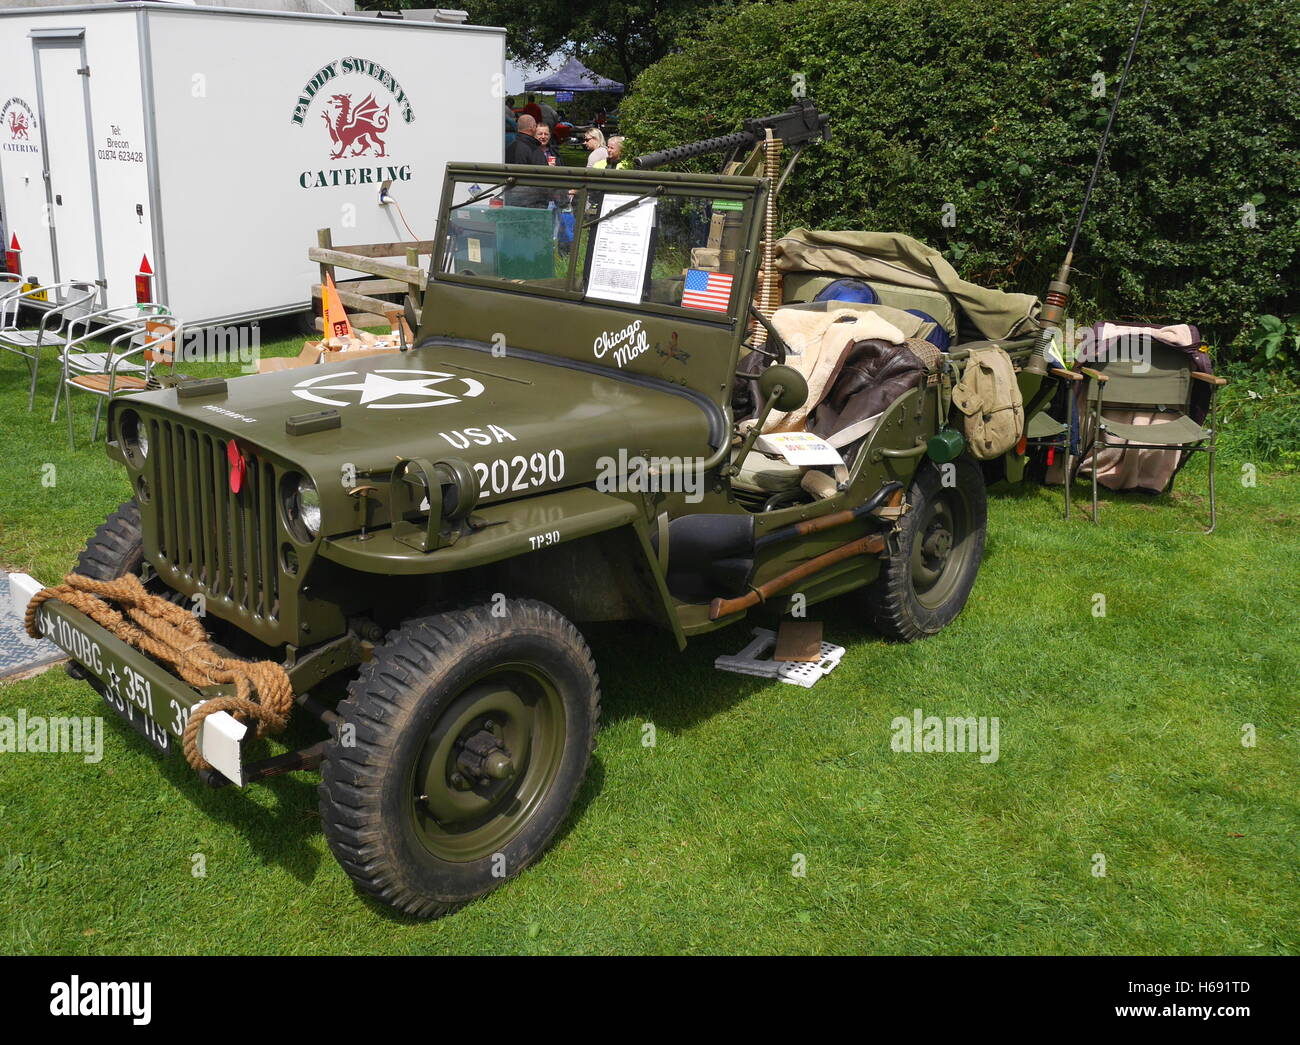 Willys Jeep Stock Photos & Willys Jeep Stock Images - Alamy